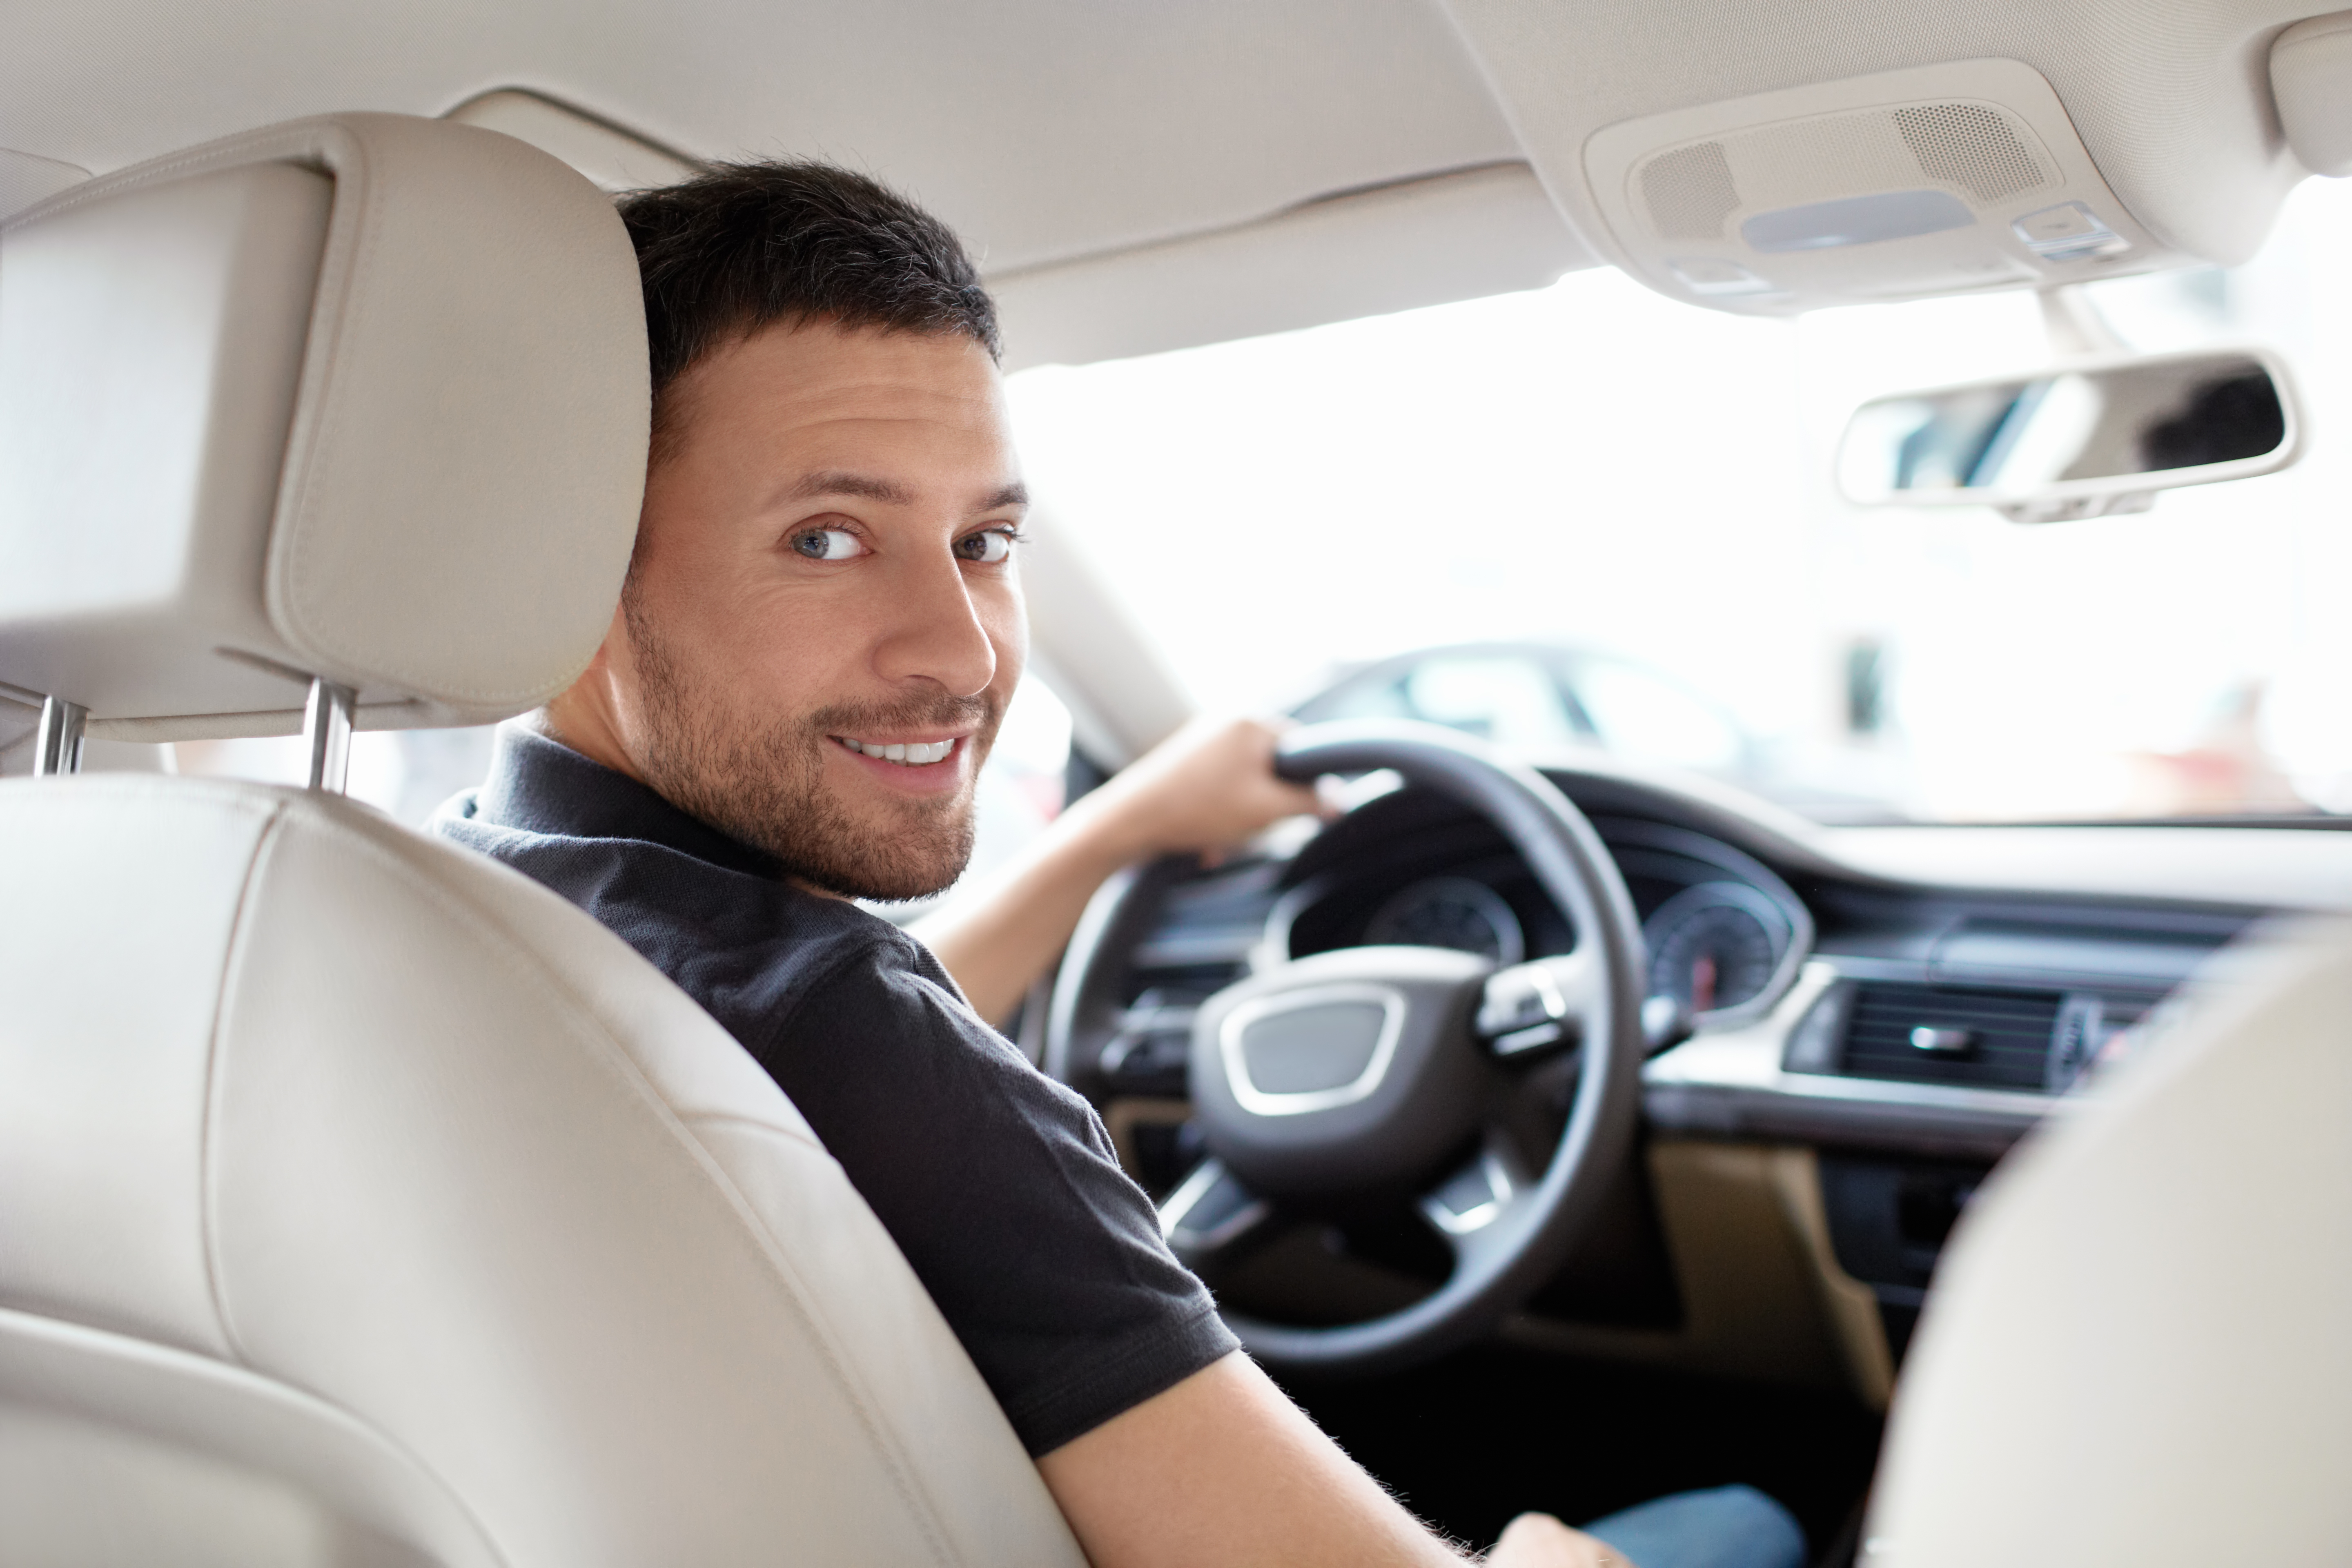 About Vehicle Leasing Shutterstock